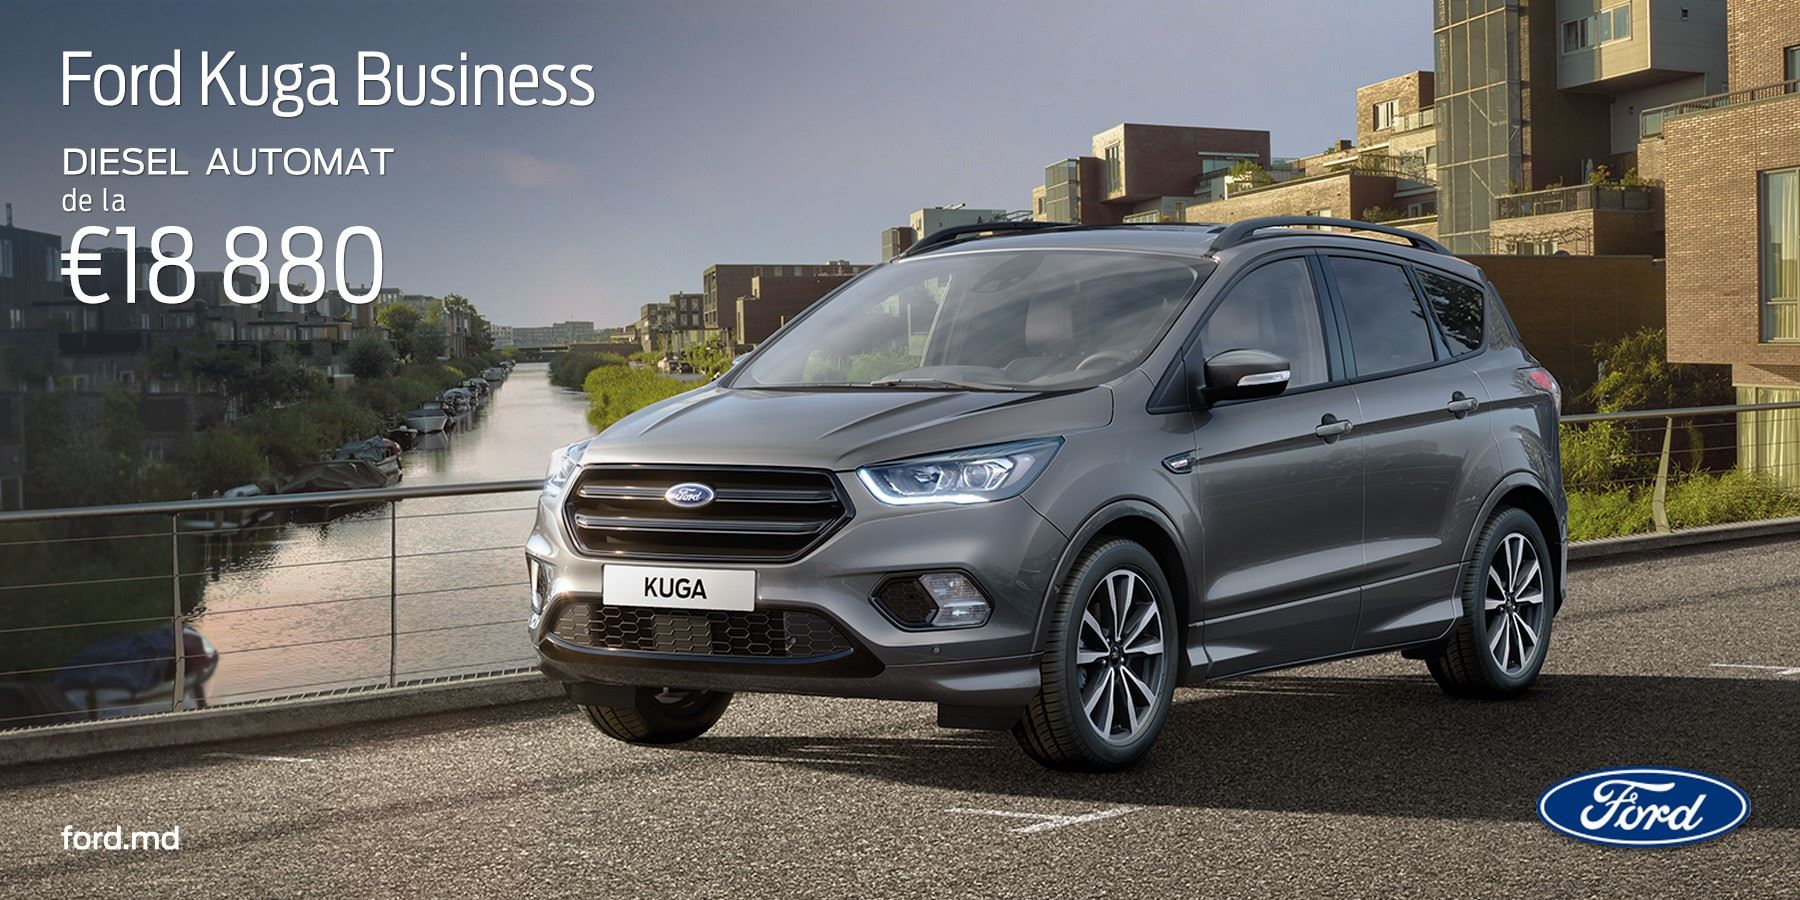 Ford Kuga Business DIESEL AUTOMAT de la €18 880